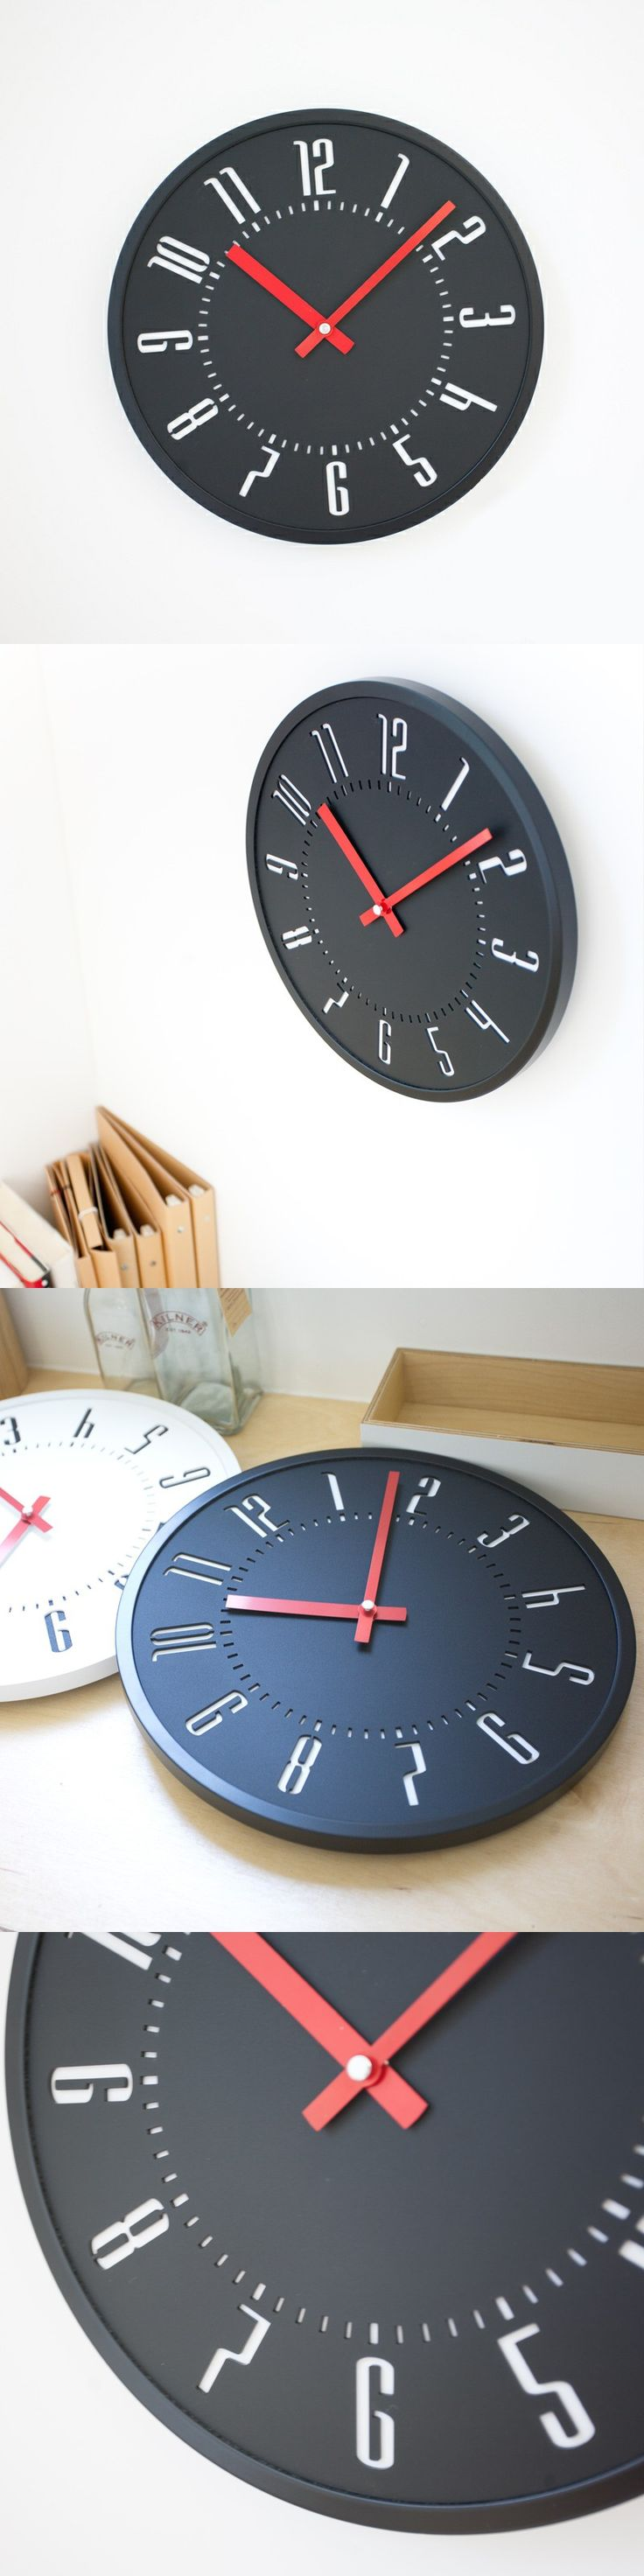 The 25 best handmade wall clocks ideas on pinterest homeart fashion mute wall clock decorative 12 inch wall clock handmade wall clock rustic clock home decor simple style amipublicfo Gallery